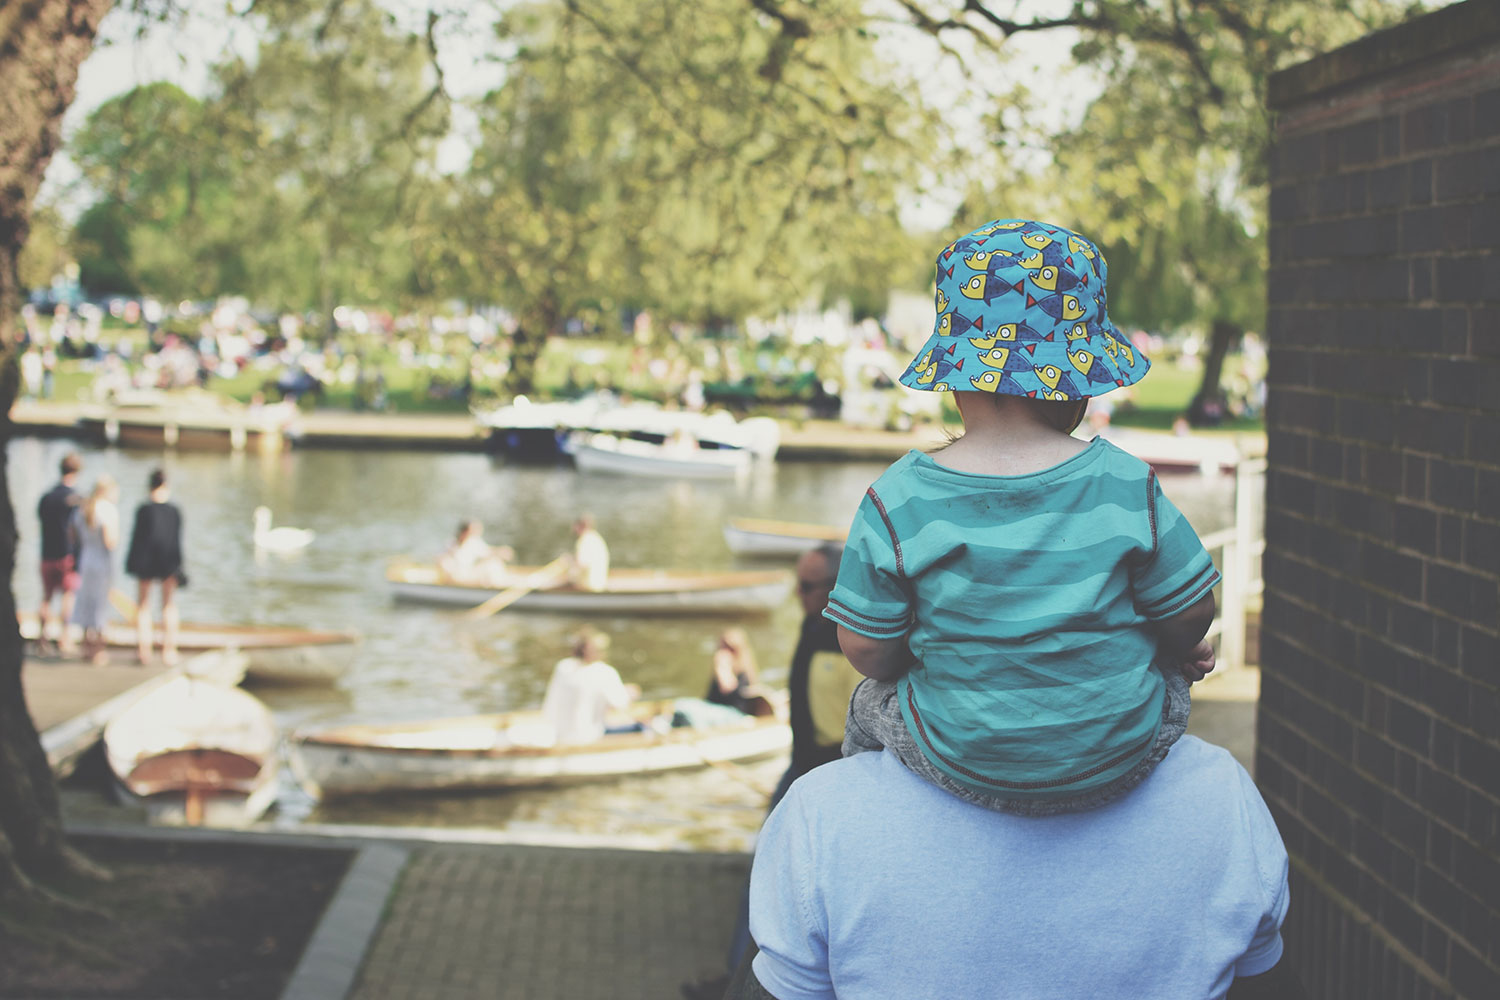 One Beautiful Sweaty Sunday at Stratford-upon-Avon - Toddler sitting on Grandad's shoulders at Stratford-upon-Avon on a warm, sunny day